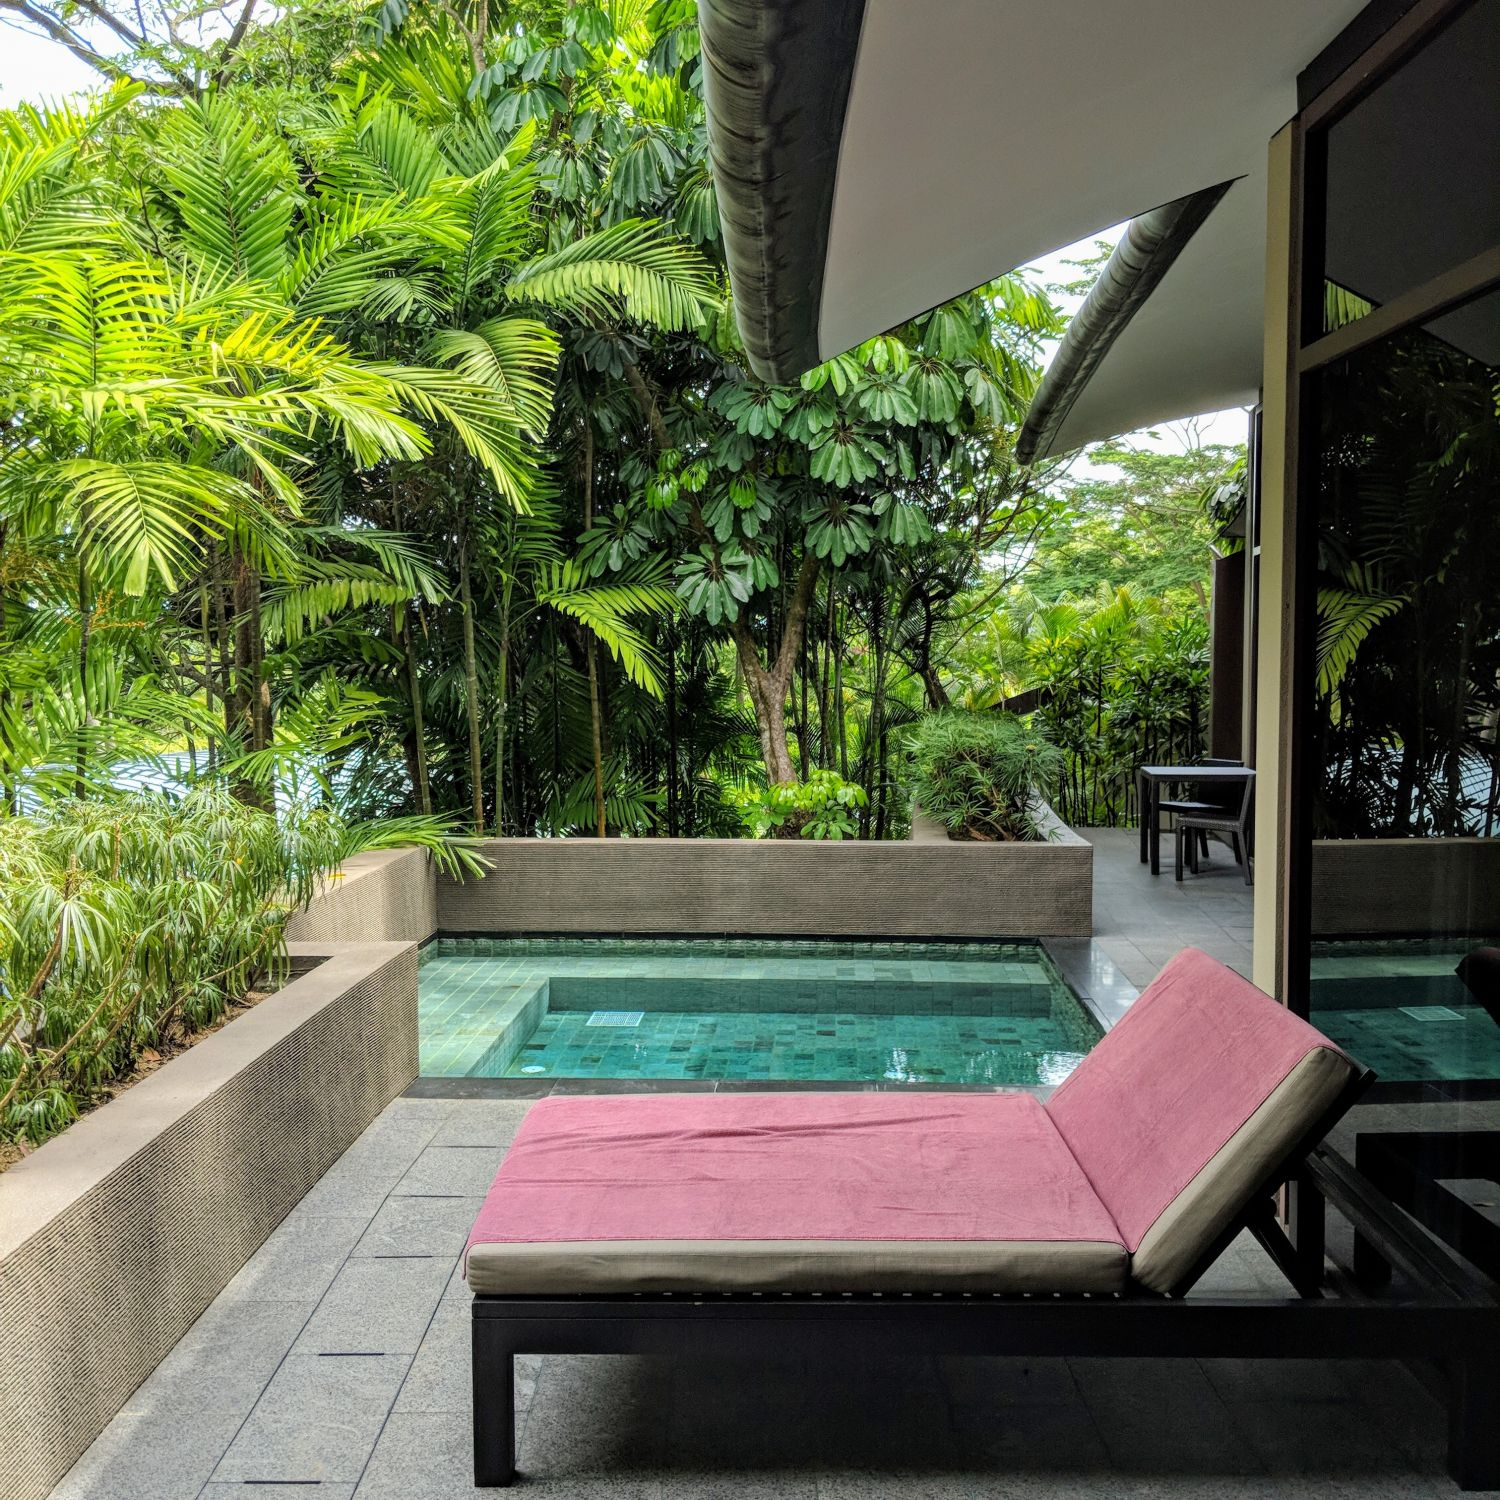 capella singapore One Bedroom Garden Villa outdoor plunge pool